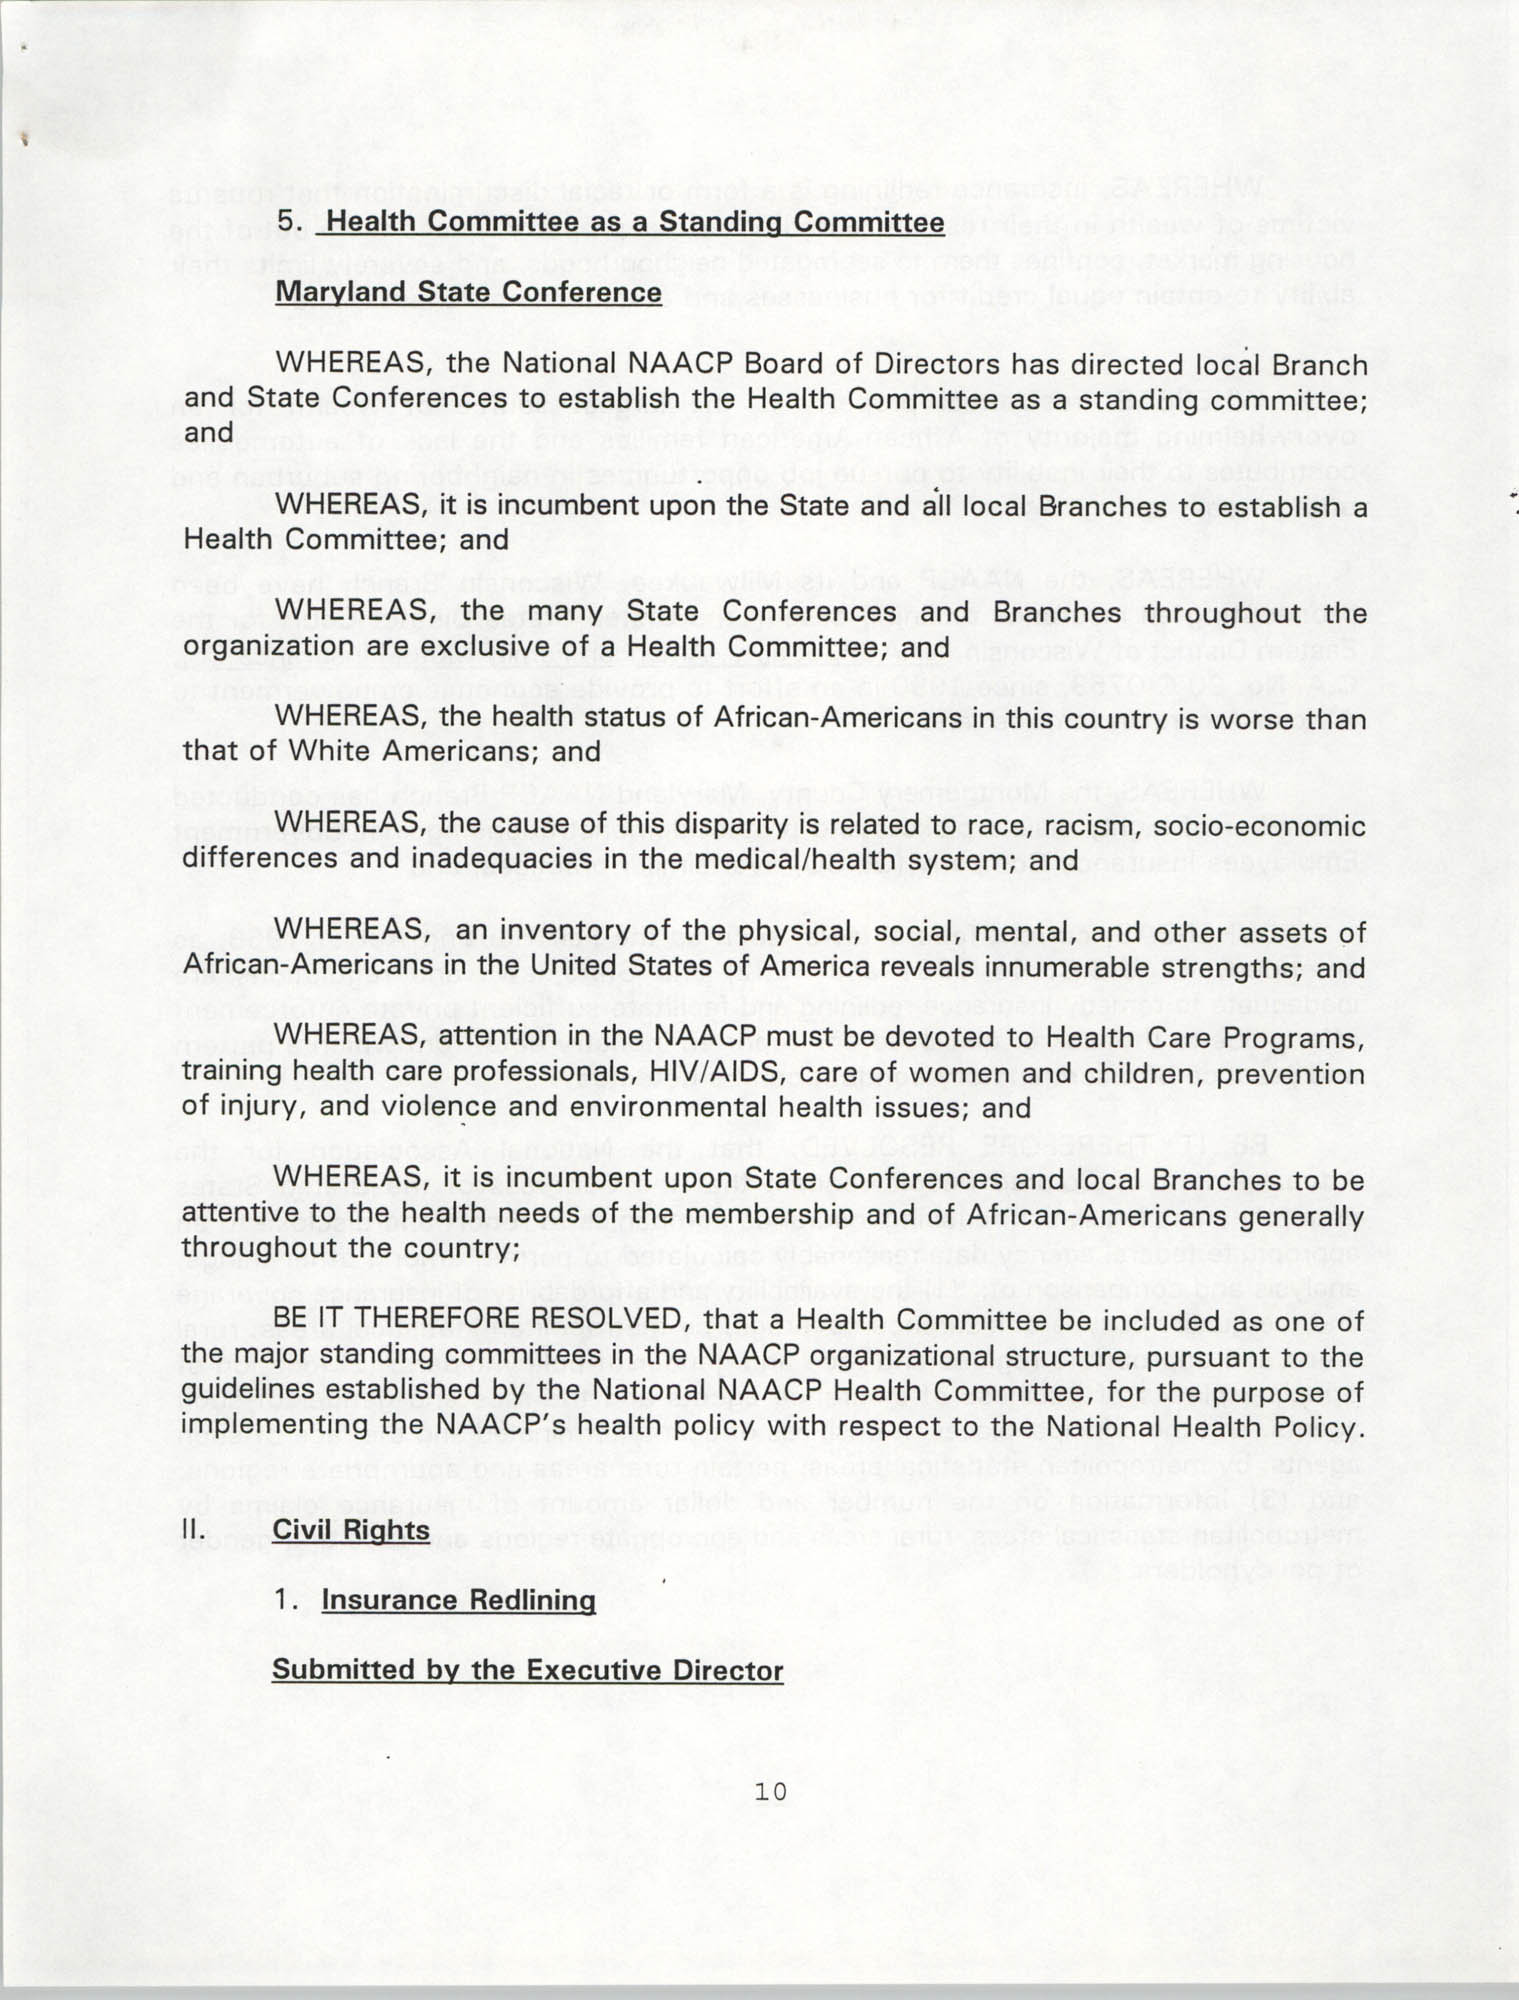 Resolutions Submitted Under Article X, Section 2 of the Constitution of the NAACP, 1994, Page 10